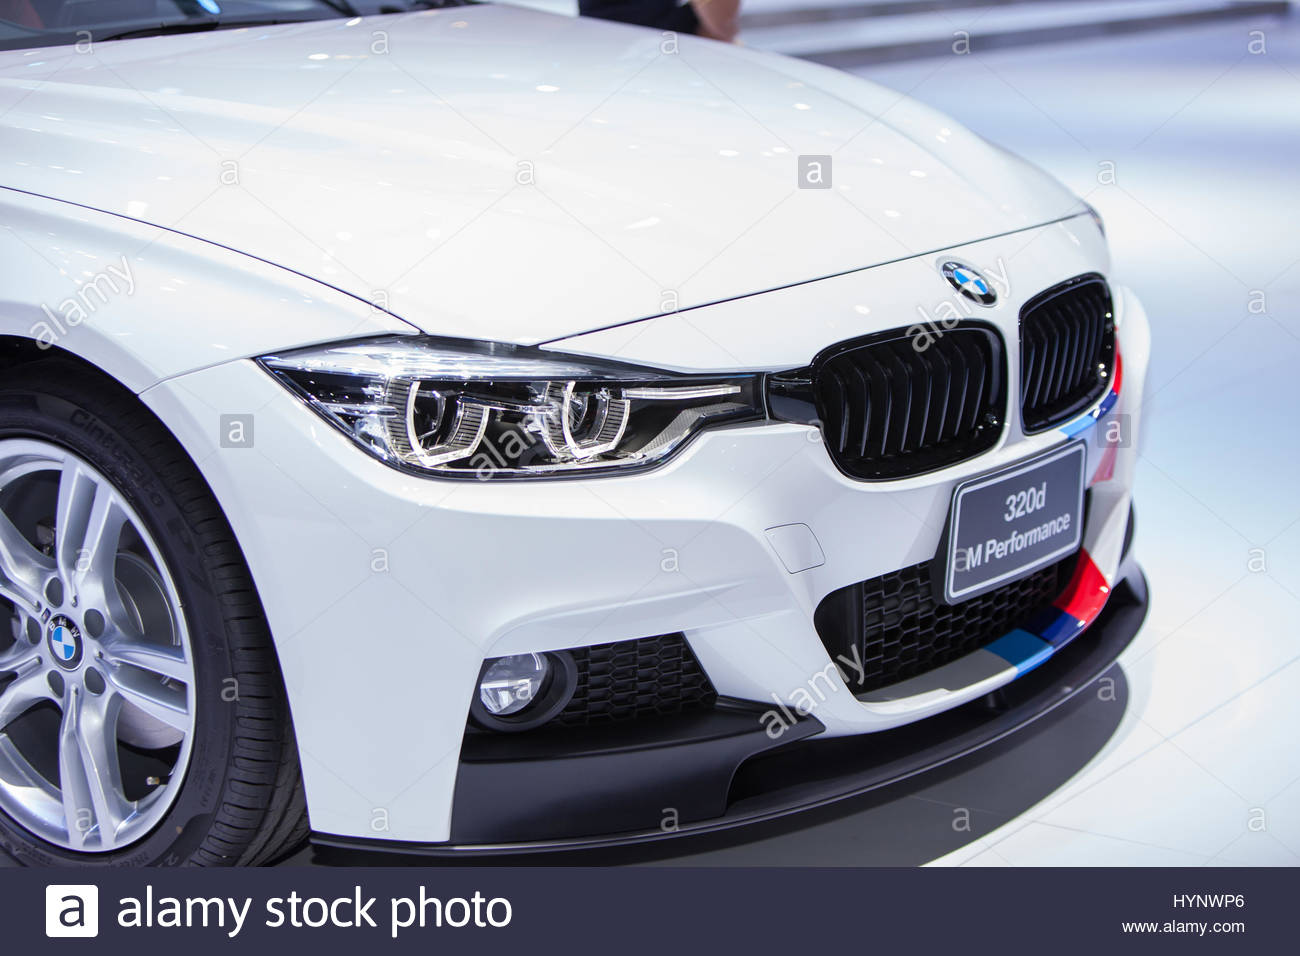 Bangkok Thailand 28 Mar 2017 Closed Bmw 320d M Performance Auto